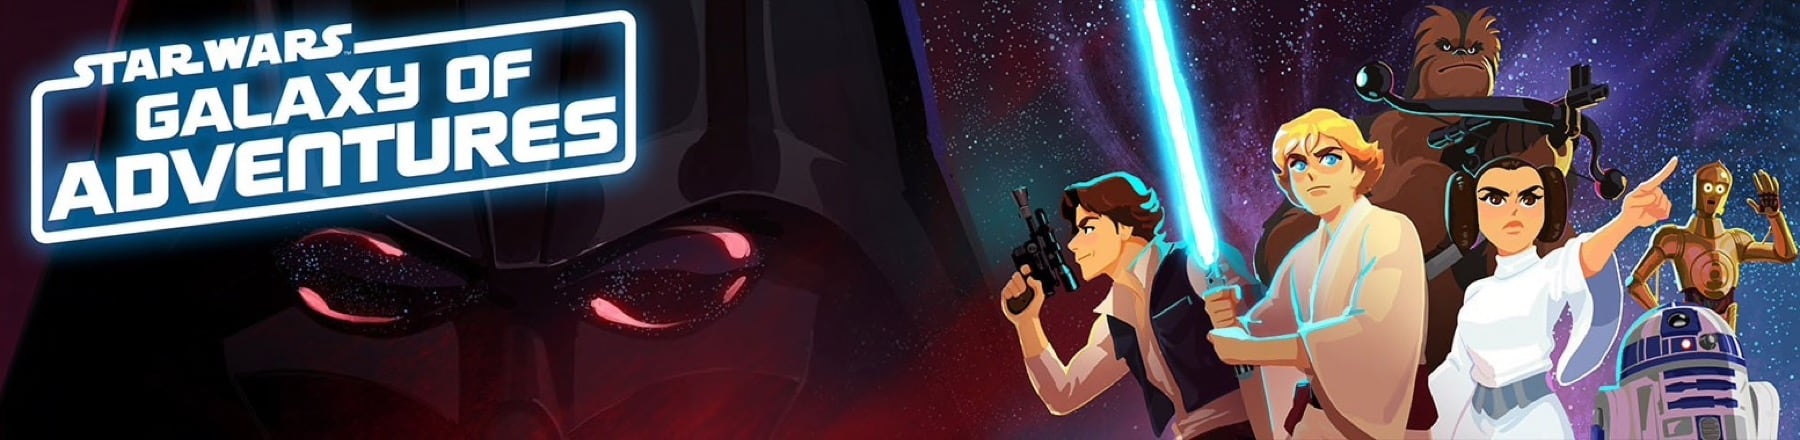 Thumbnail for 'Star Wars Galaxy of Adventures' to Introduce Star Wars to the Next Generation